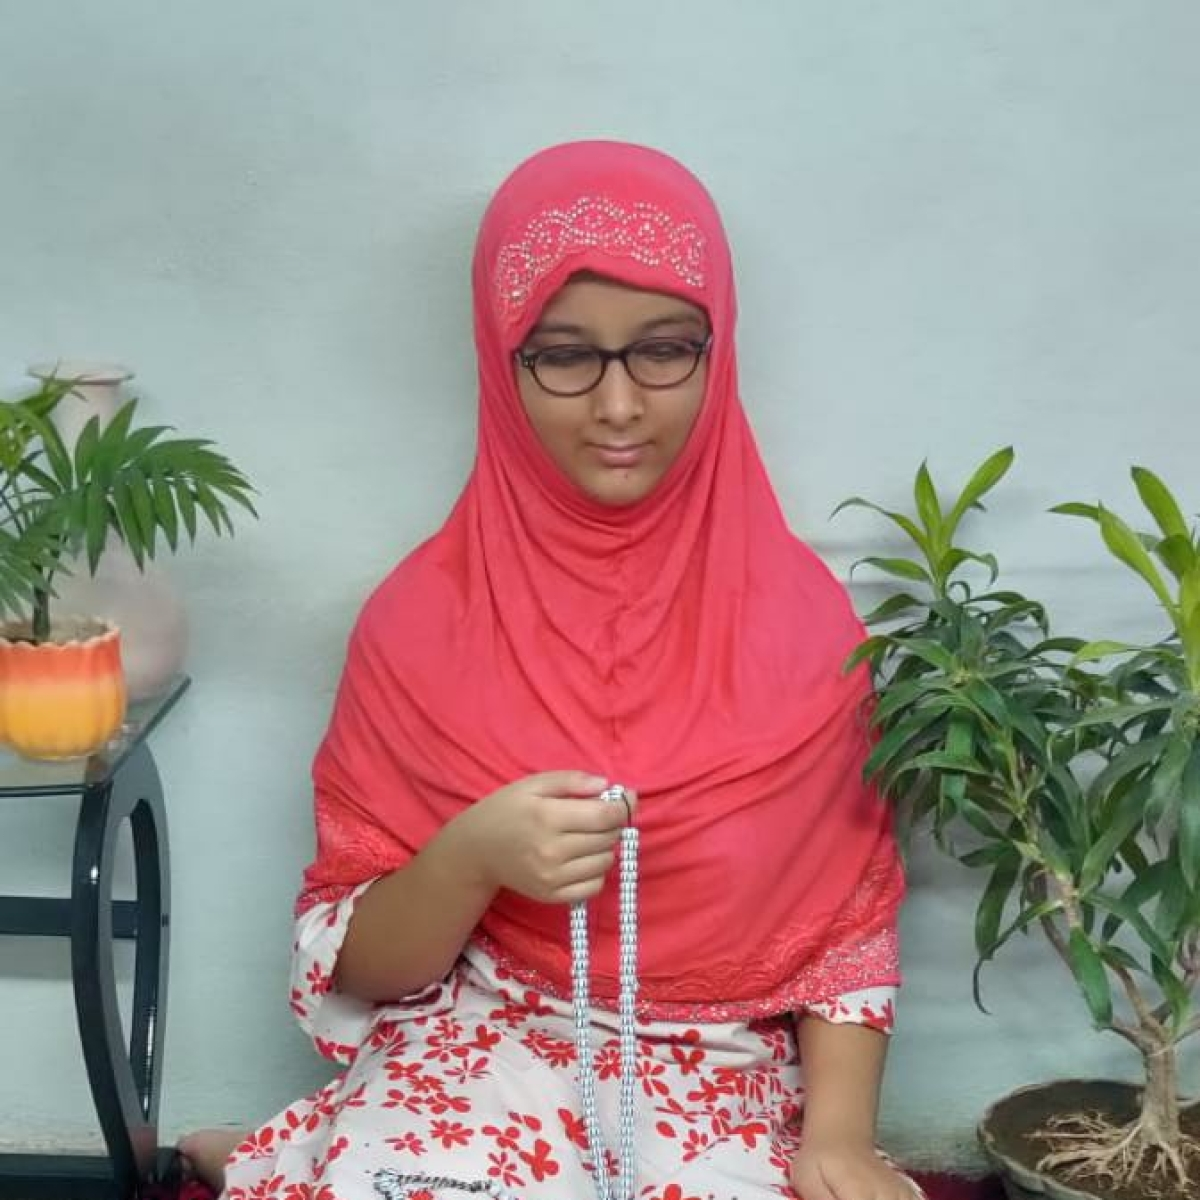 Eid-ul-Fitr 2020: This 12-yr-old girl from Indore prays for 10 days, beseeching Allah to heal world from coronavirus